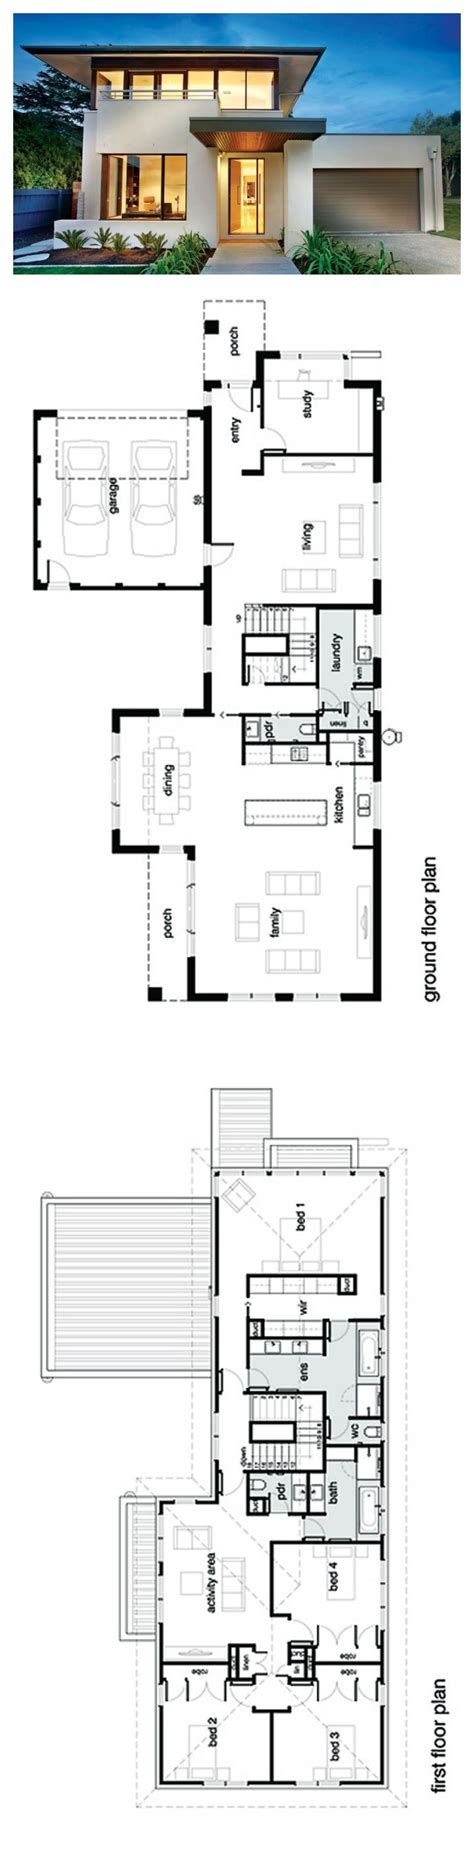 Modern Home Design Floor Plans The 25 Best Ideas About Modern House Plans On Pinterest Modern House Floor Plans Modern